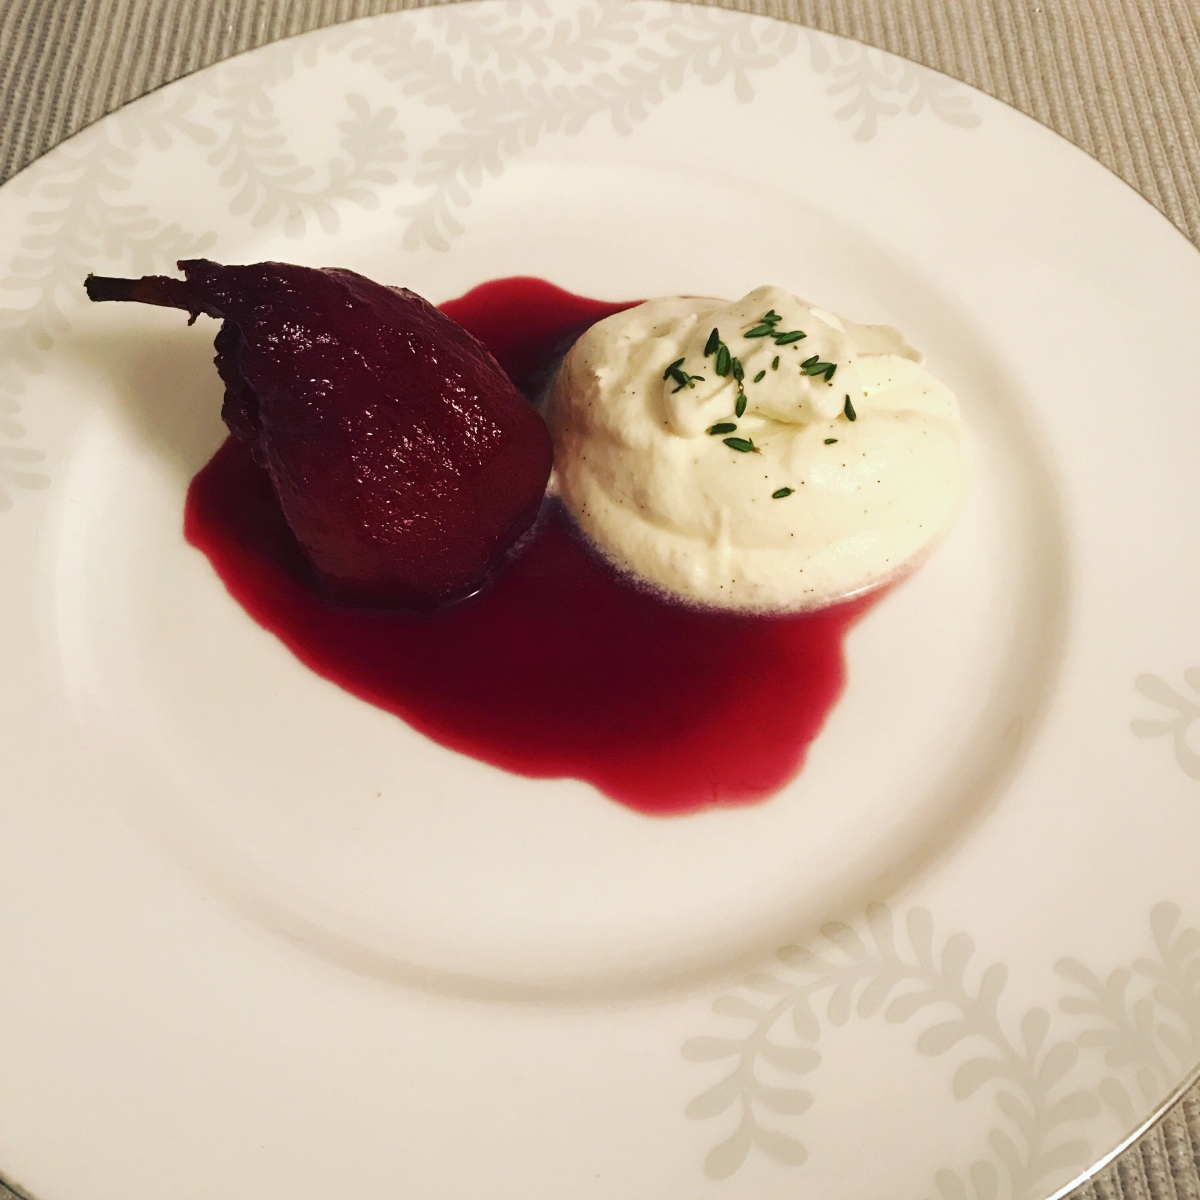 Poached pear with vanilla and mascarpone mousse